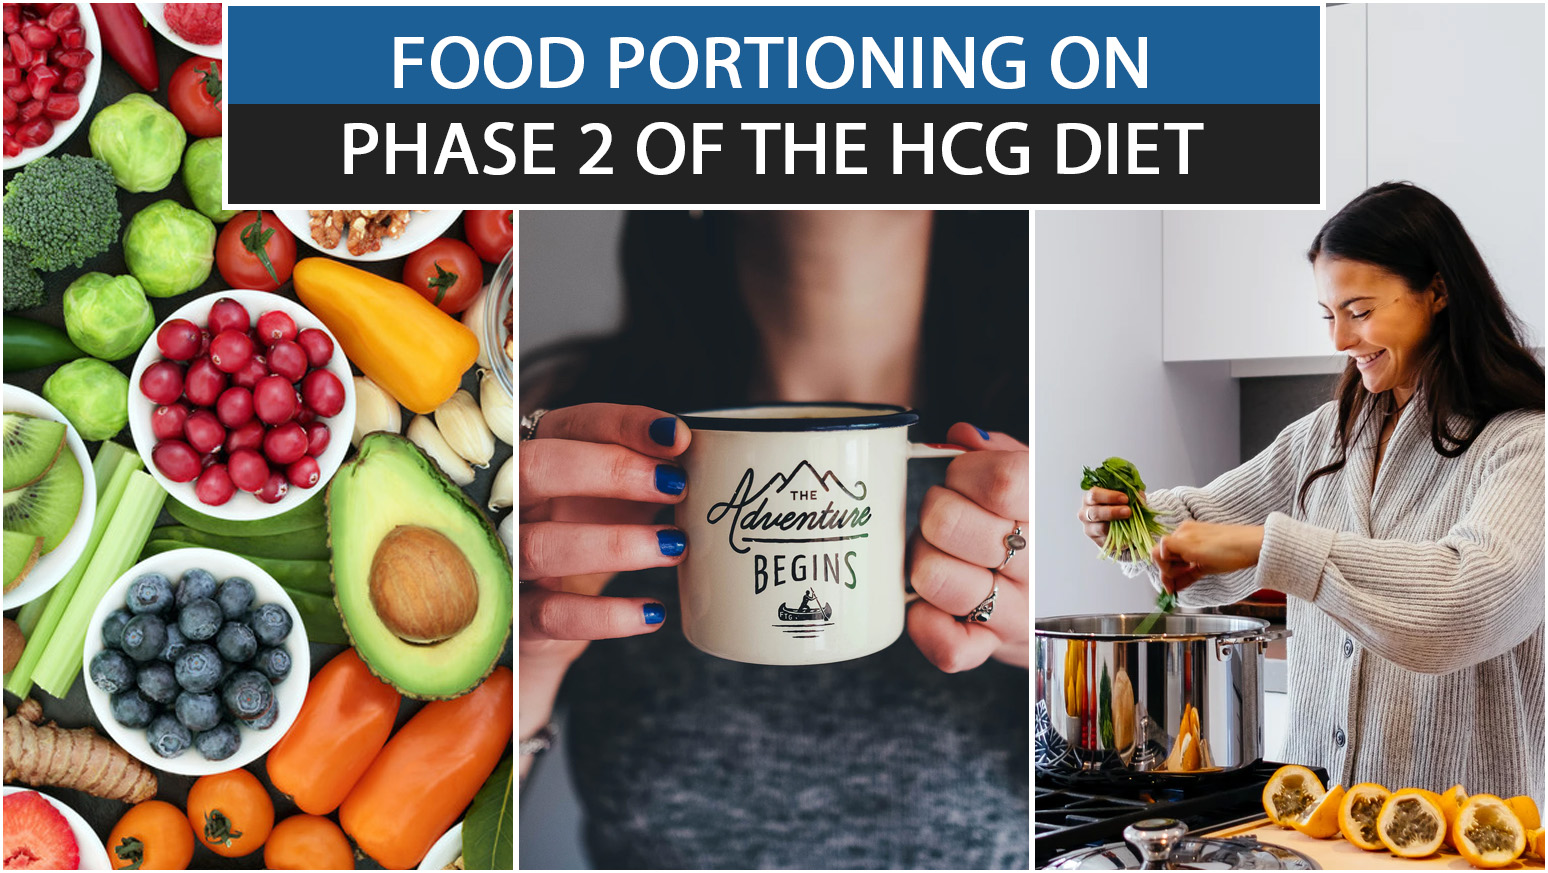 FOOD PORTIONING ON PHASE 2 OF THE HCG DIET